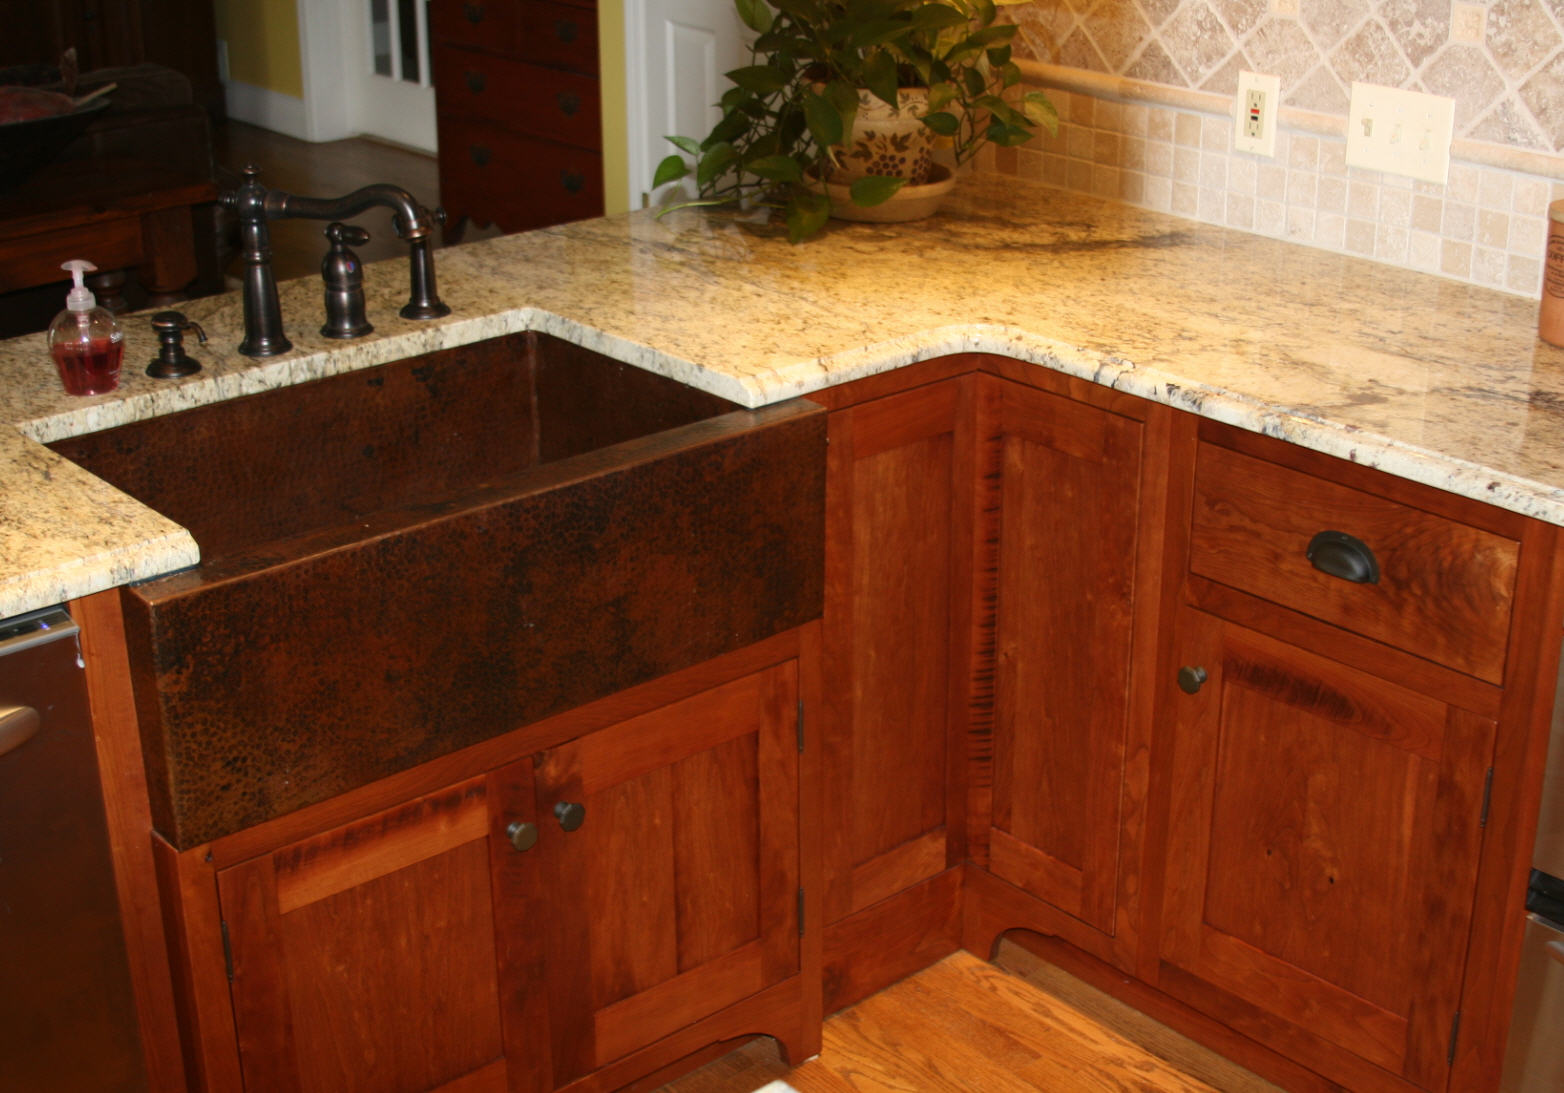 lazy susan still need to add some base molding along cabinet bottom